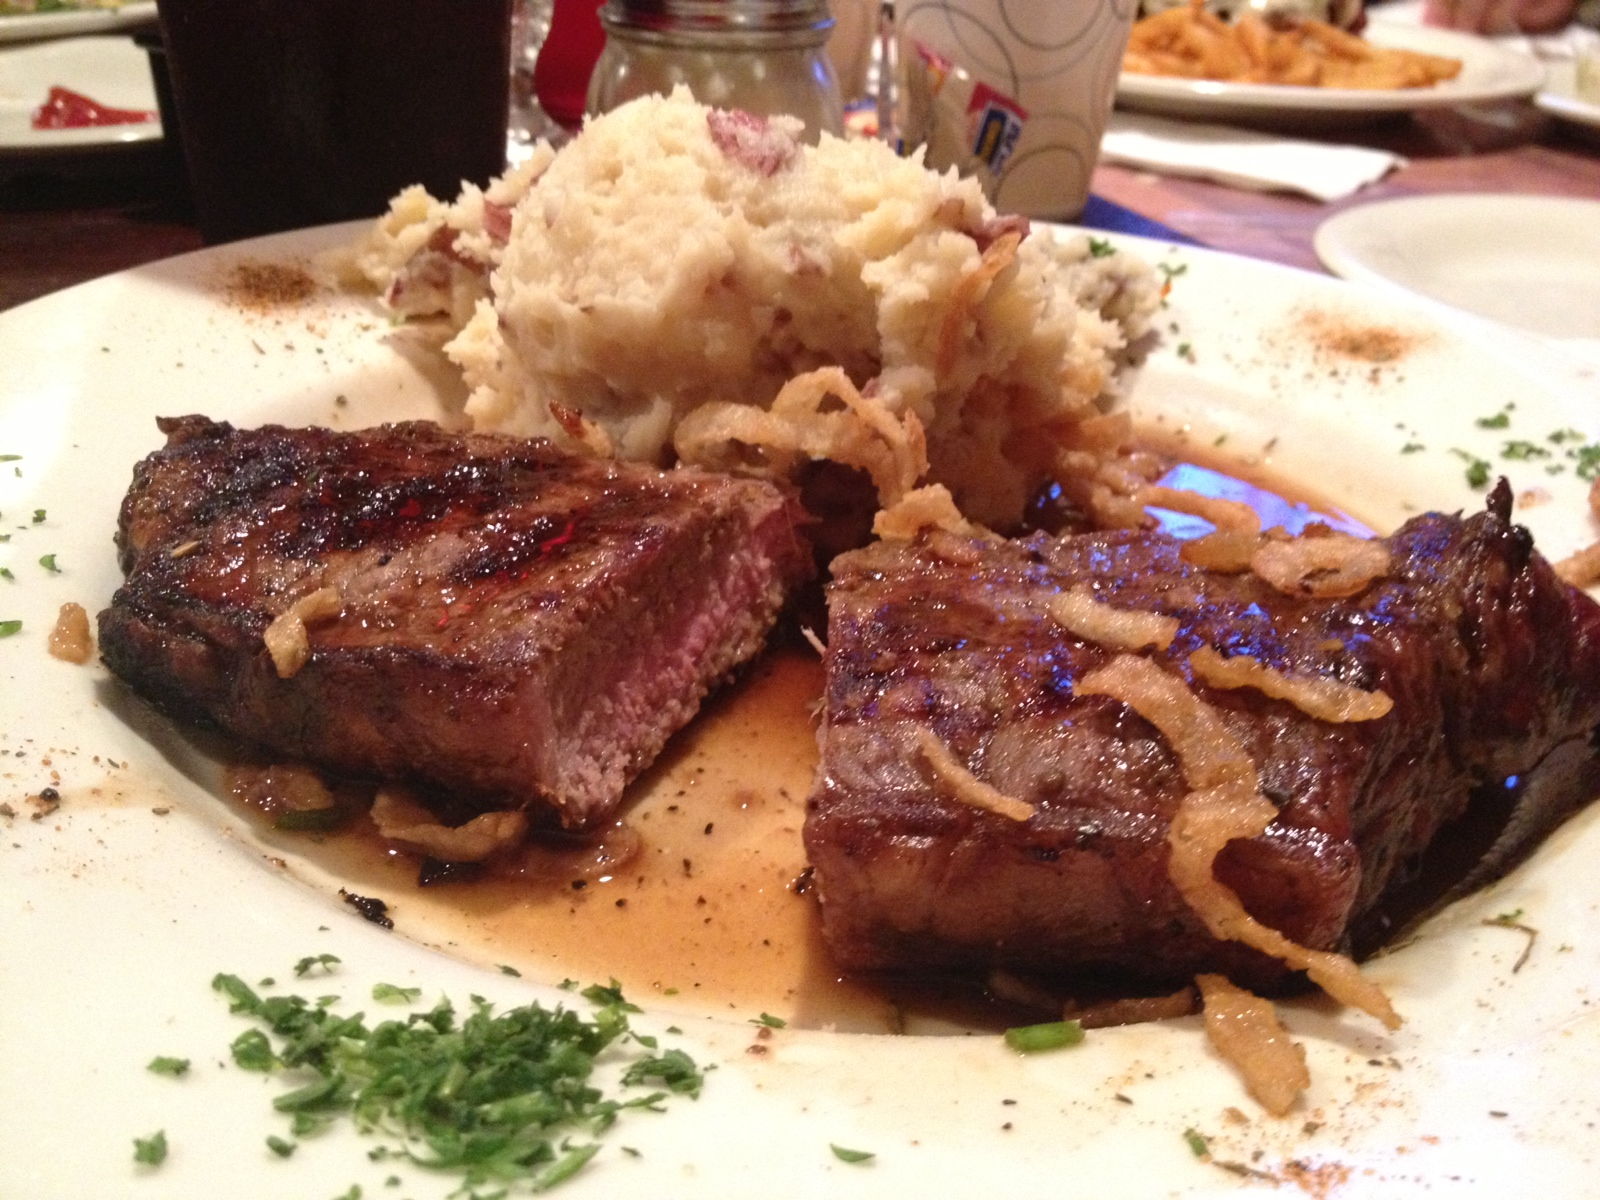 NY Strip Steak, Garlic Mashed Potatoes with Fried Onions from The Cabin in Freehold, NJ